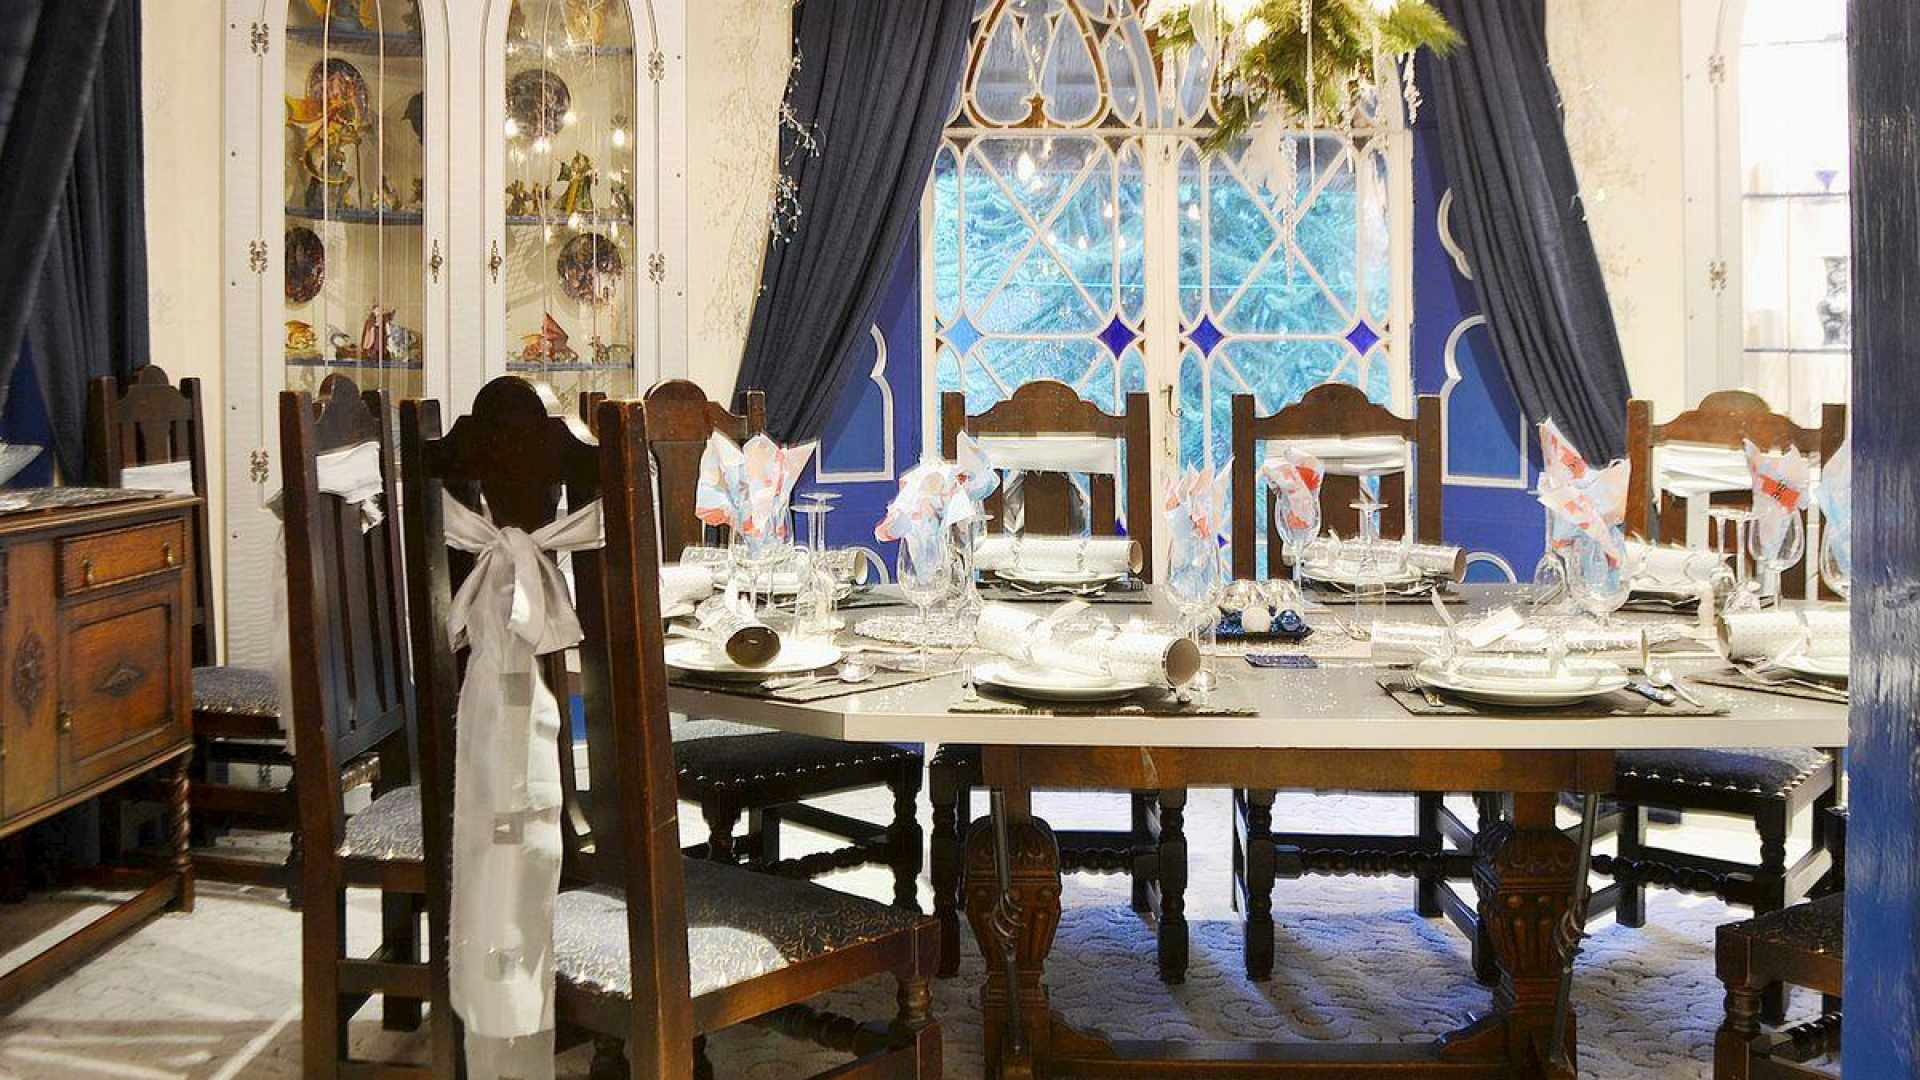 Dining room table all ready to host Christmas lunch